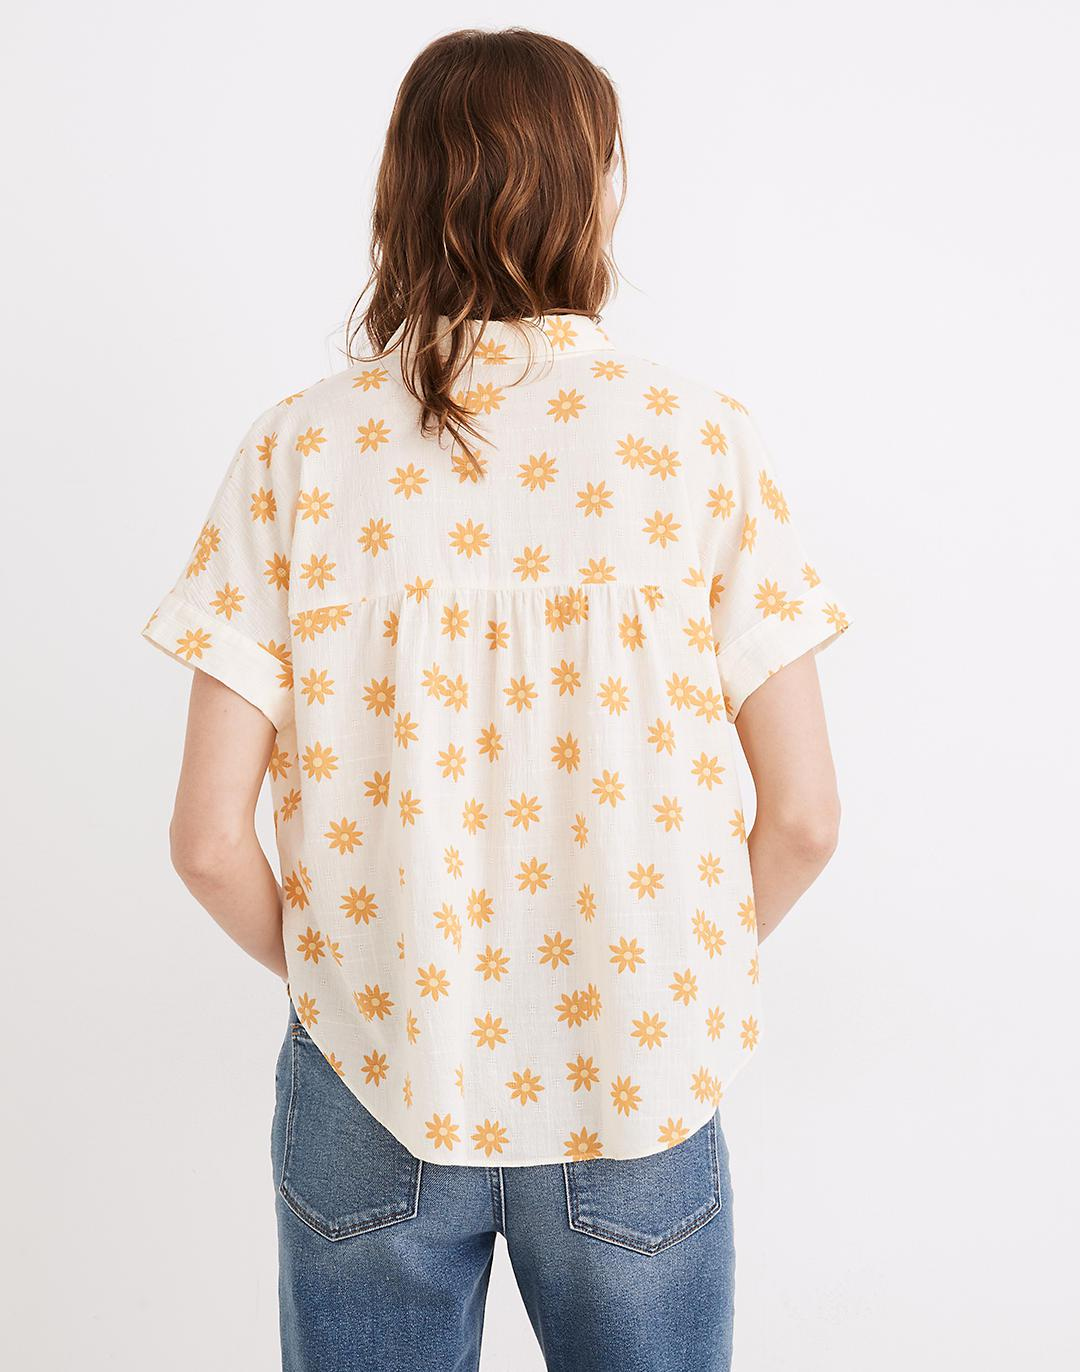 Hilltop Shirt in Daisy Groove 2